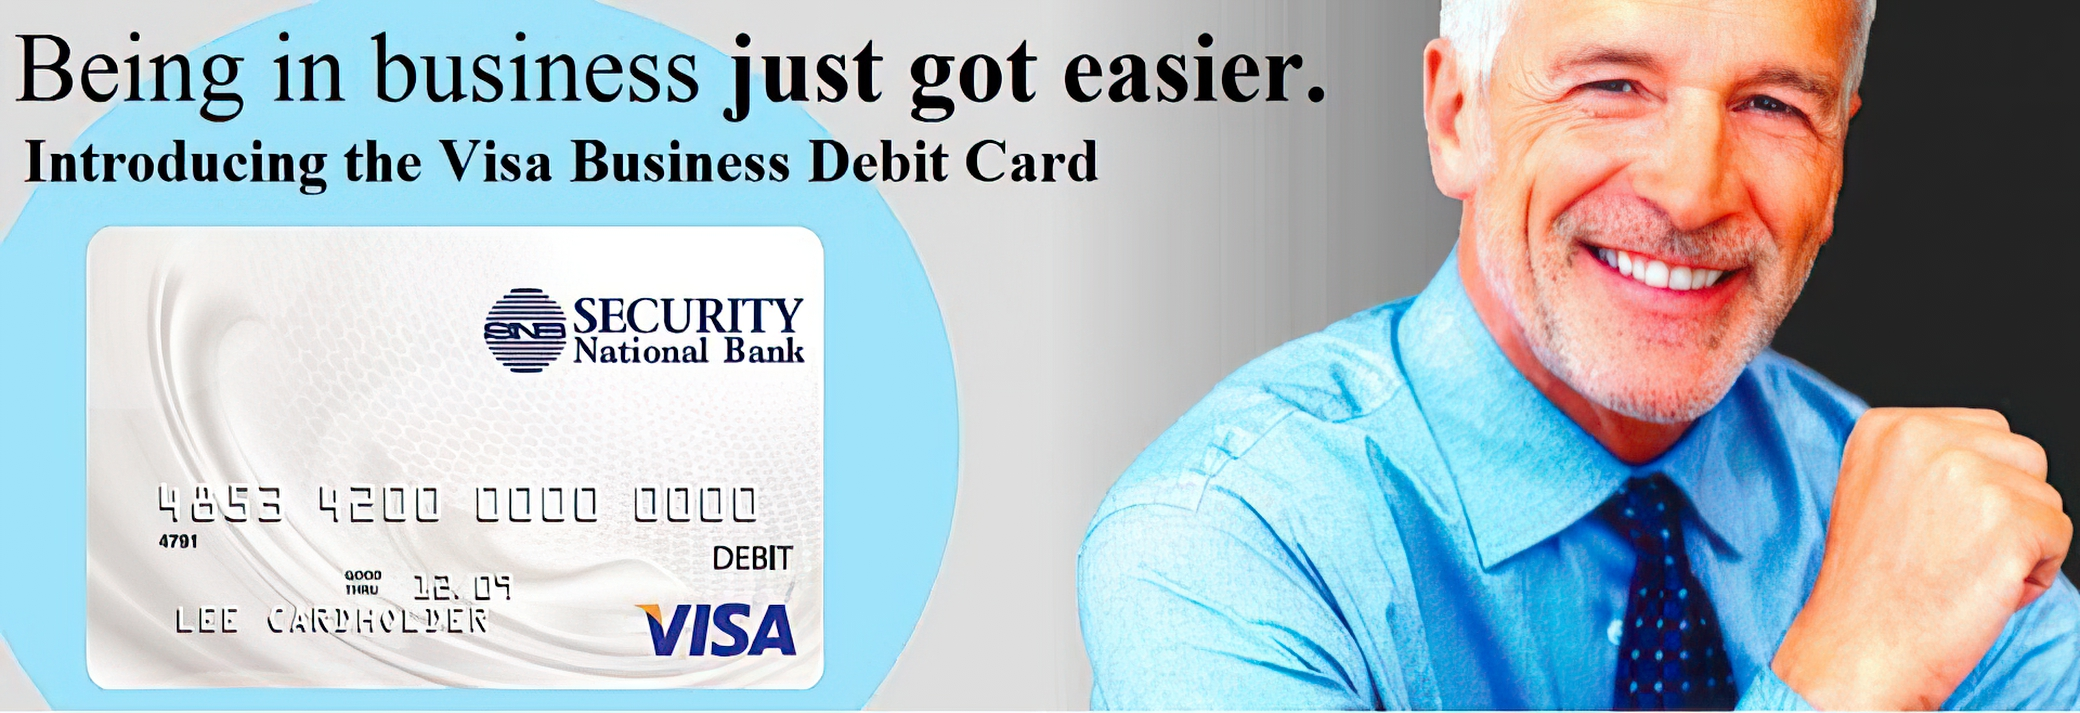 Man with debit card